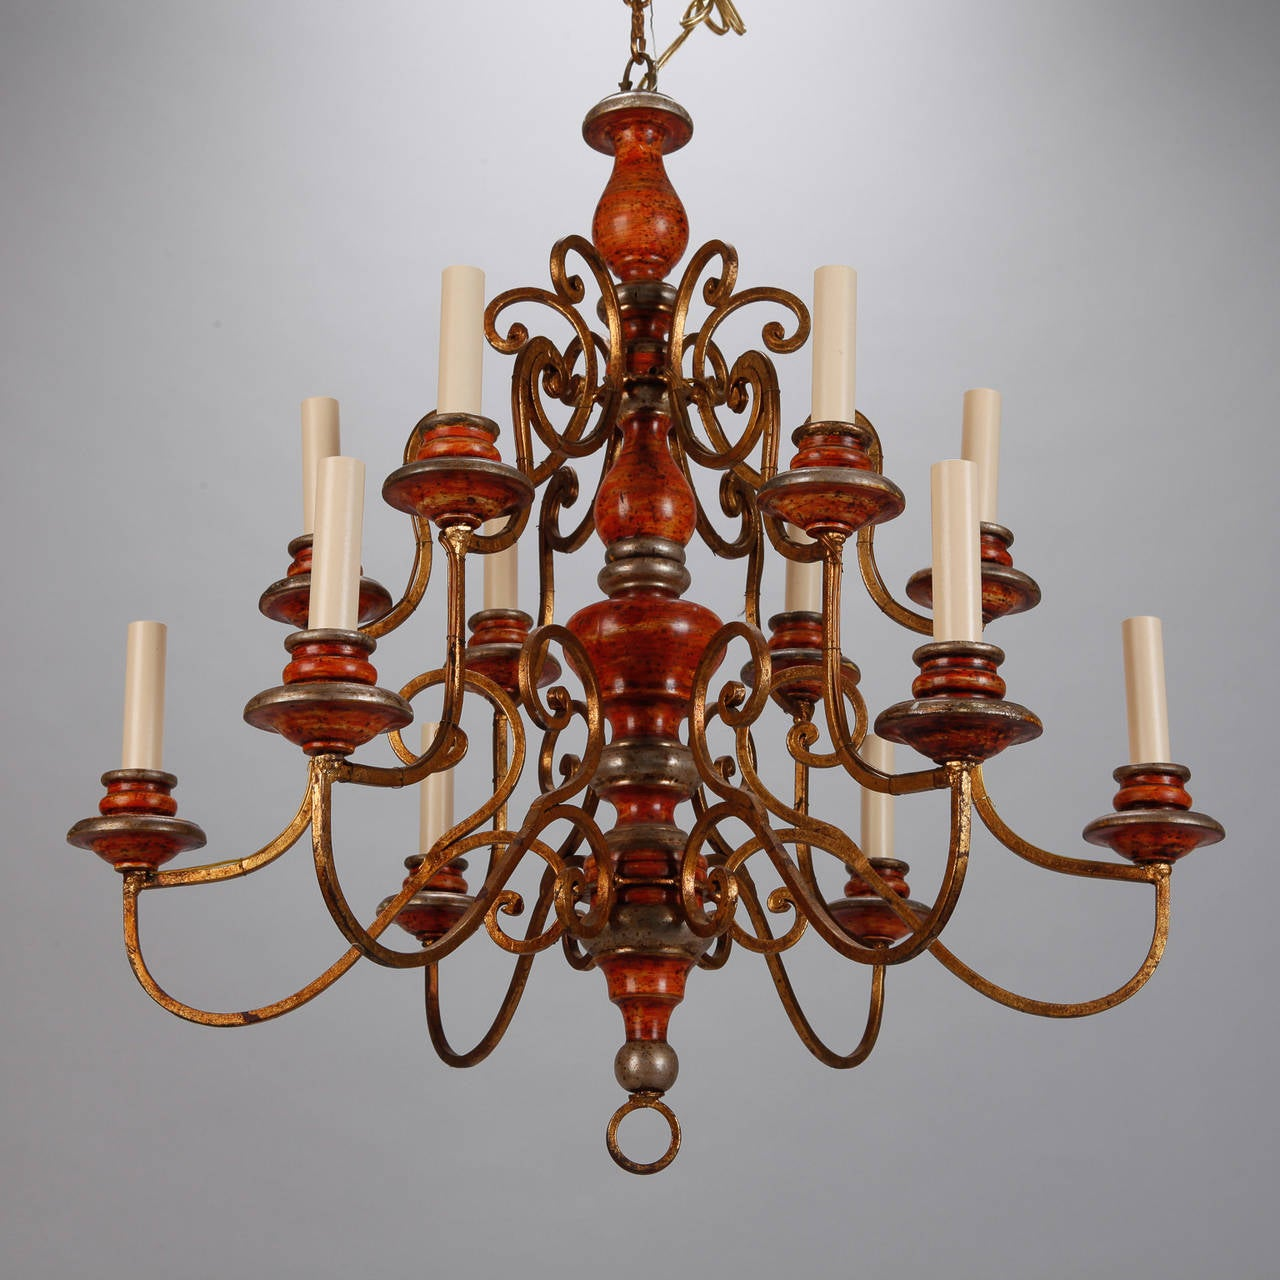 Twelve Light Italian Painted Wood and Scrolled Gilt Metal Chandelier For Sale 2